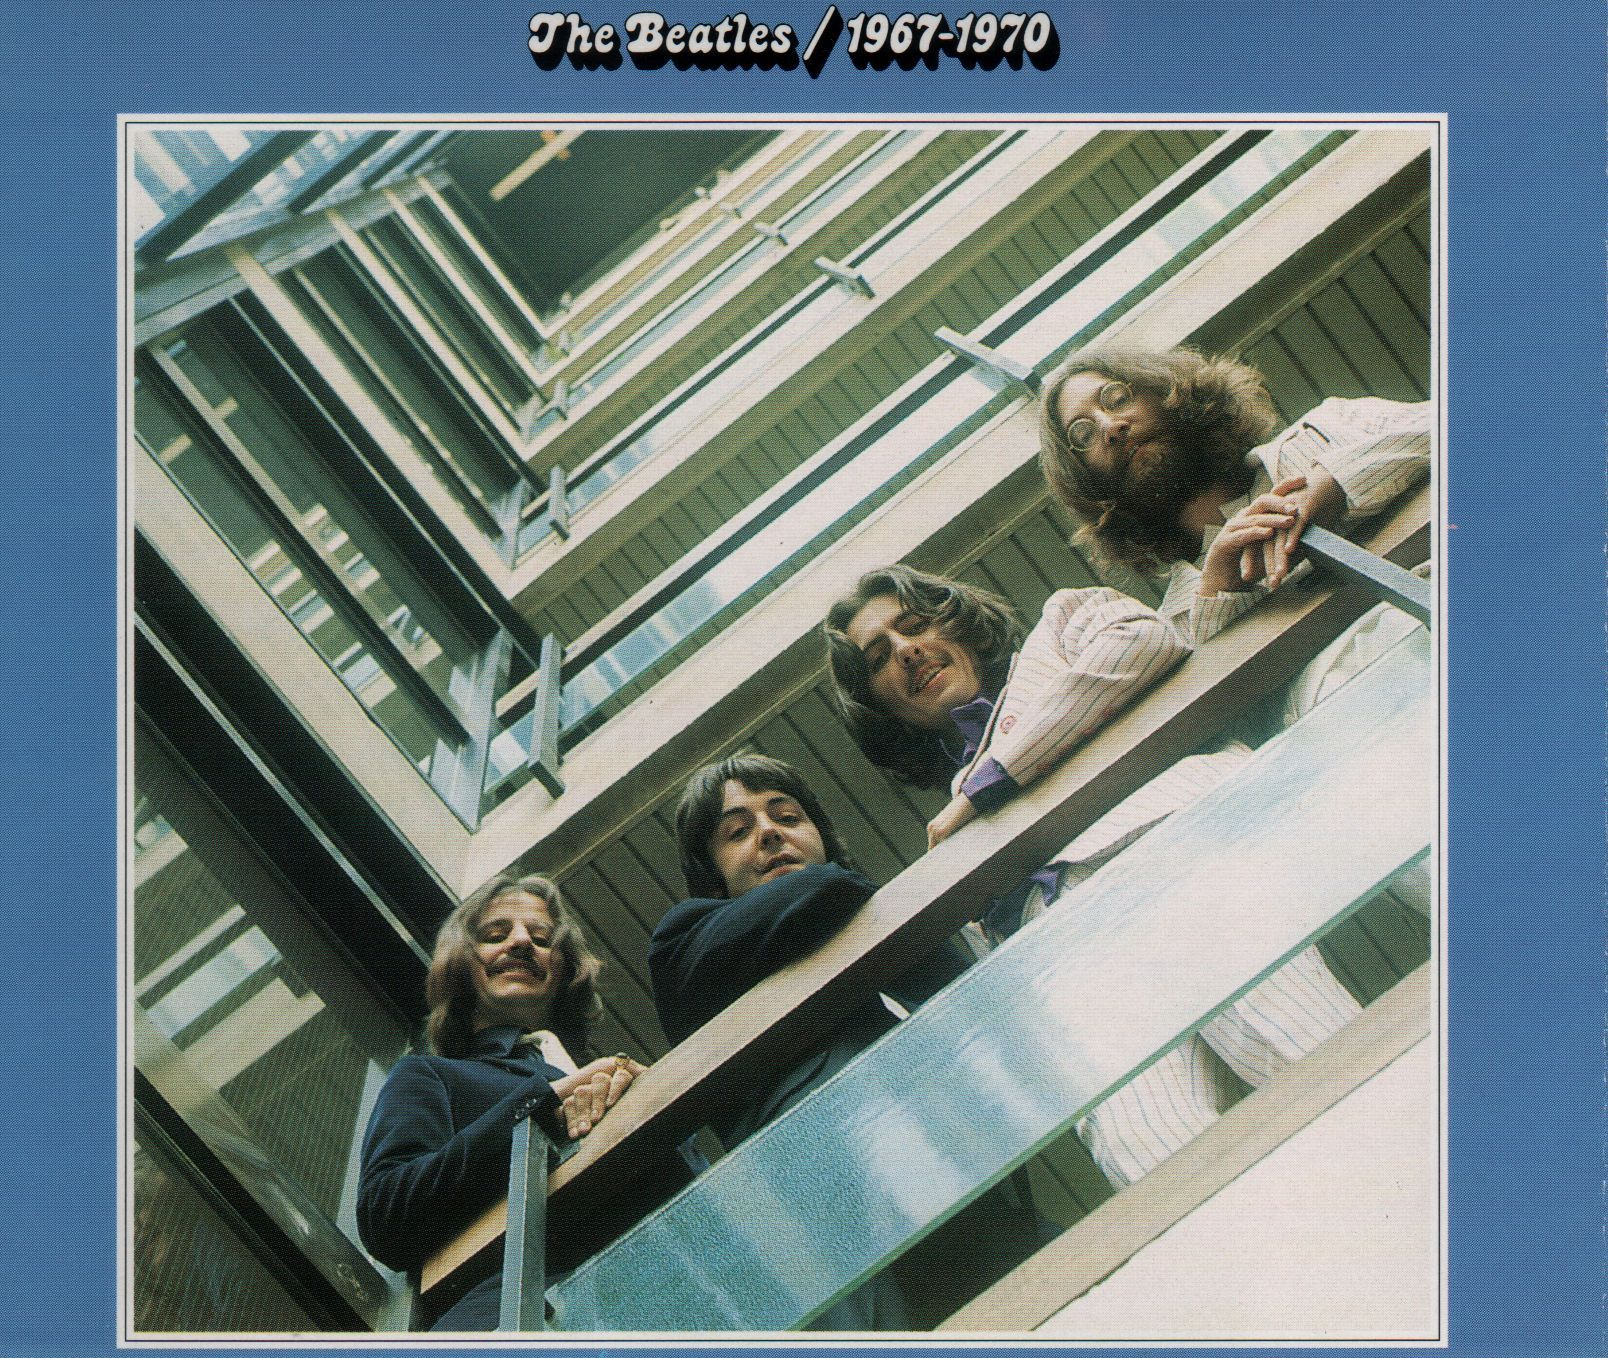 The Beatles - 1967 - 1970 album cover